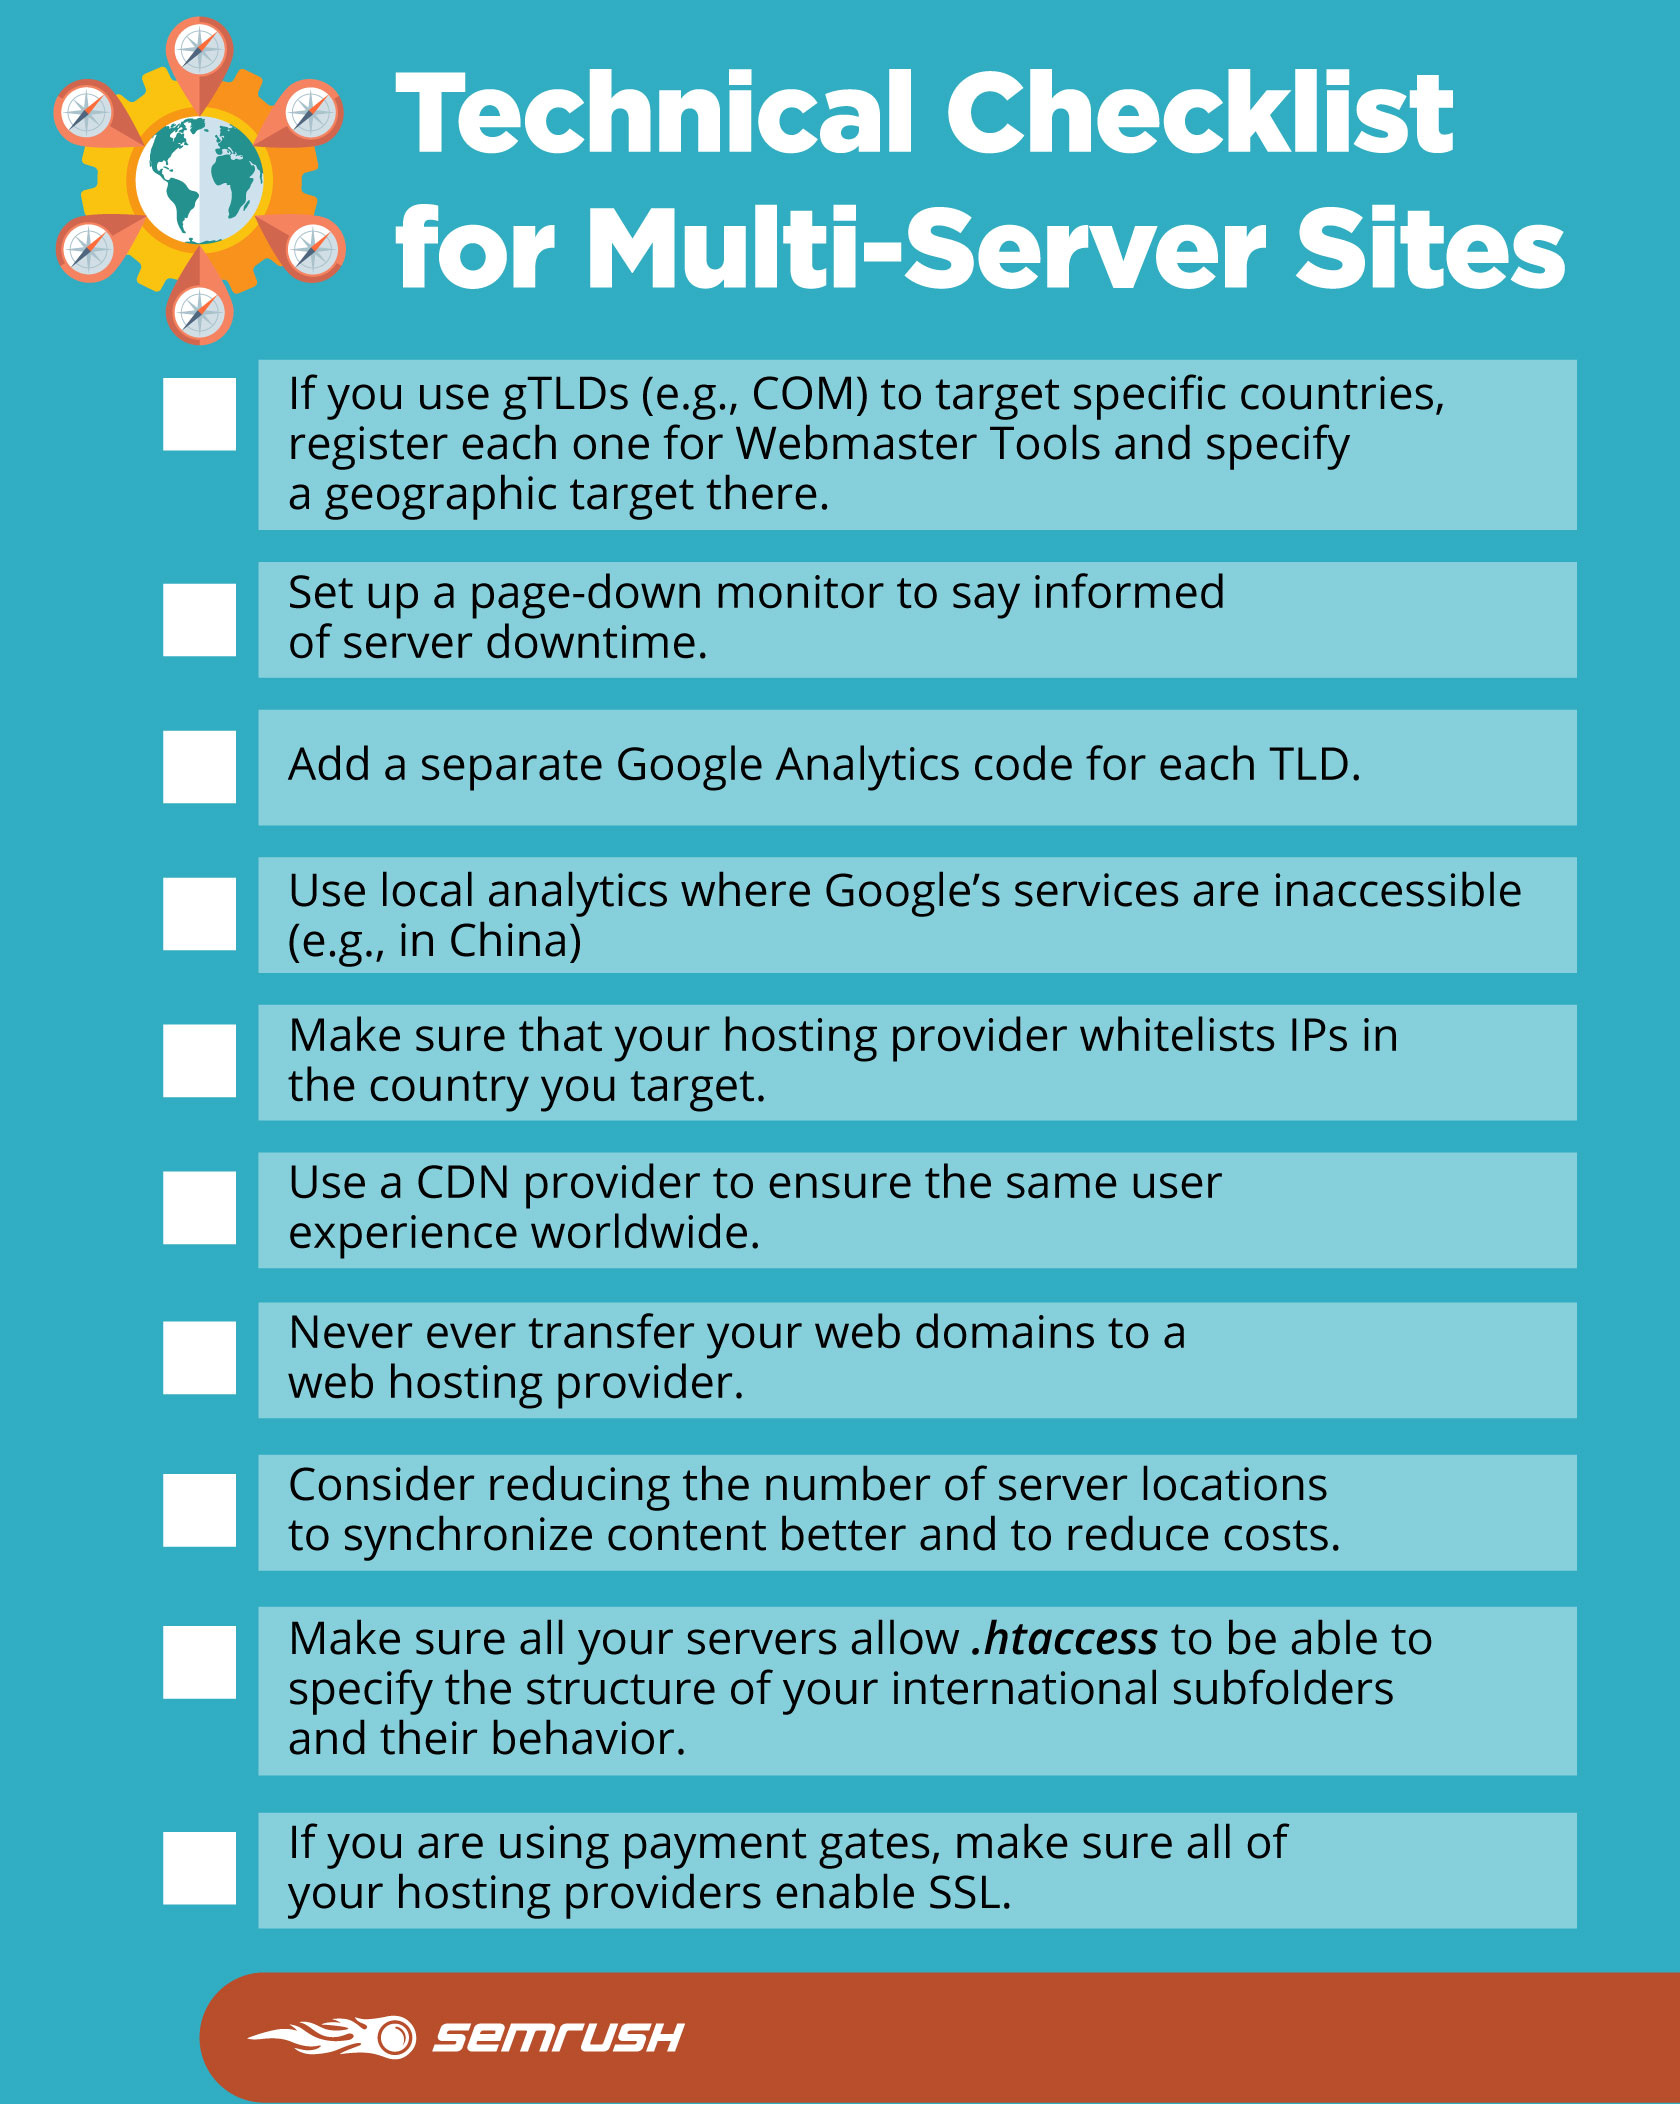 Technical Checklist for Multi-Server Sites